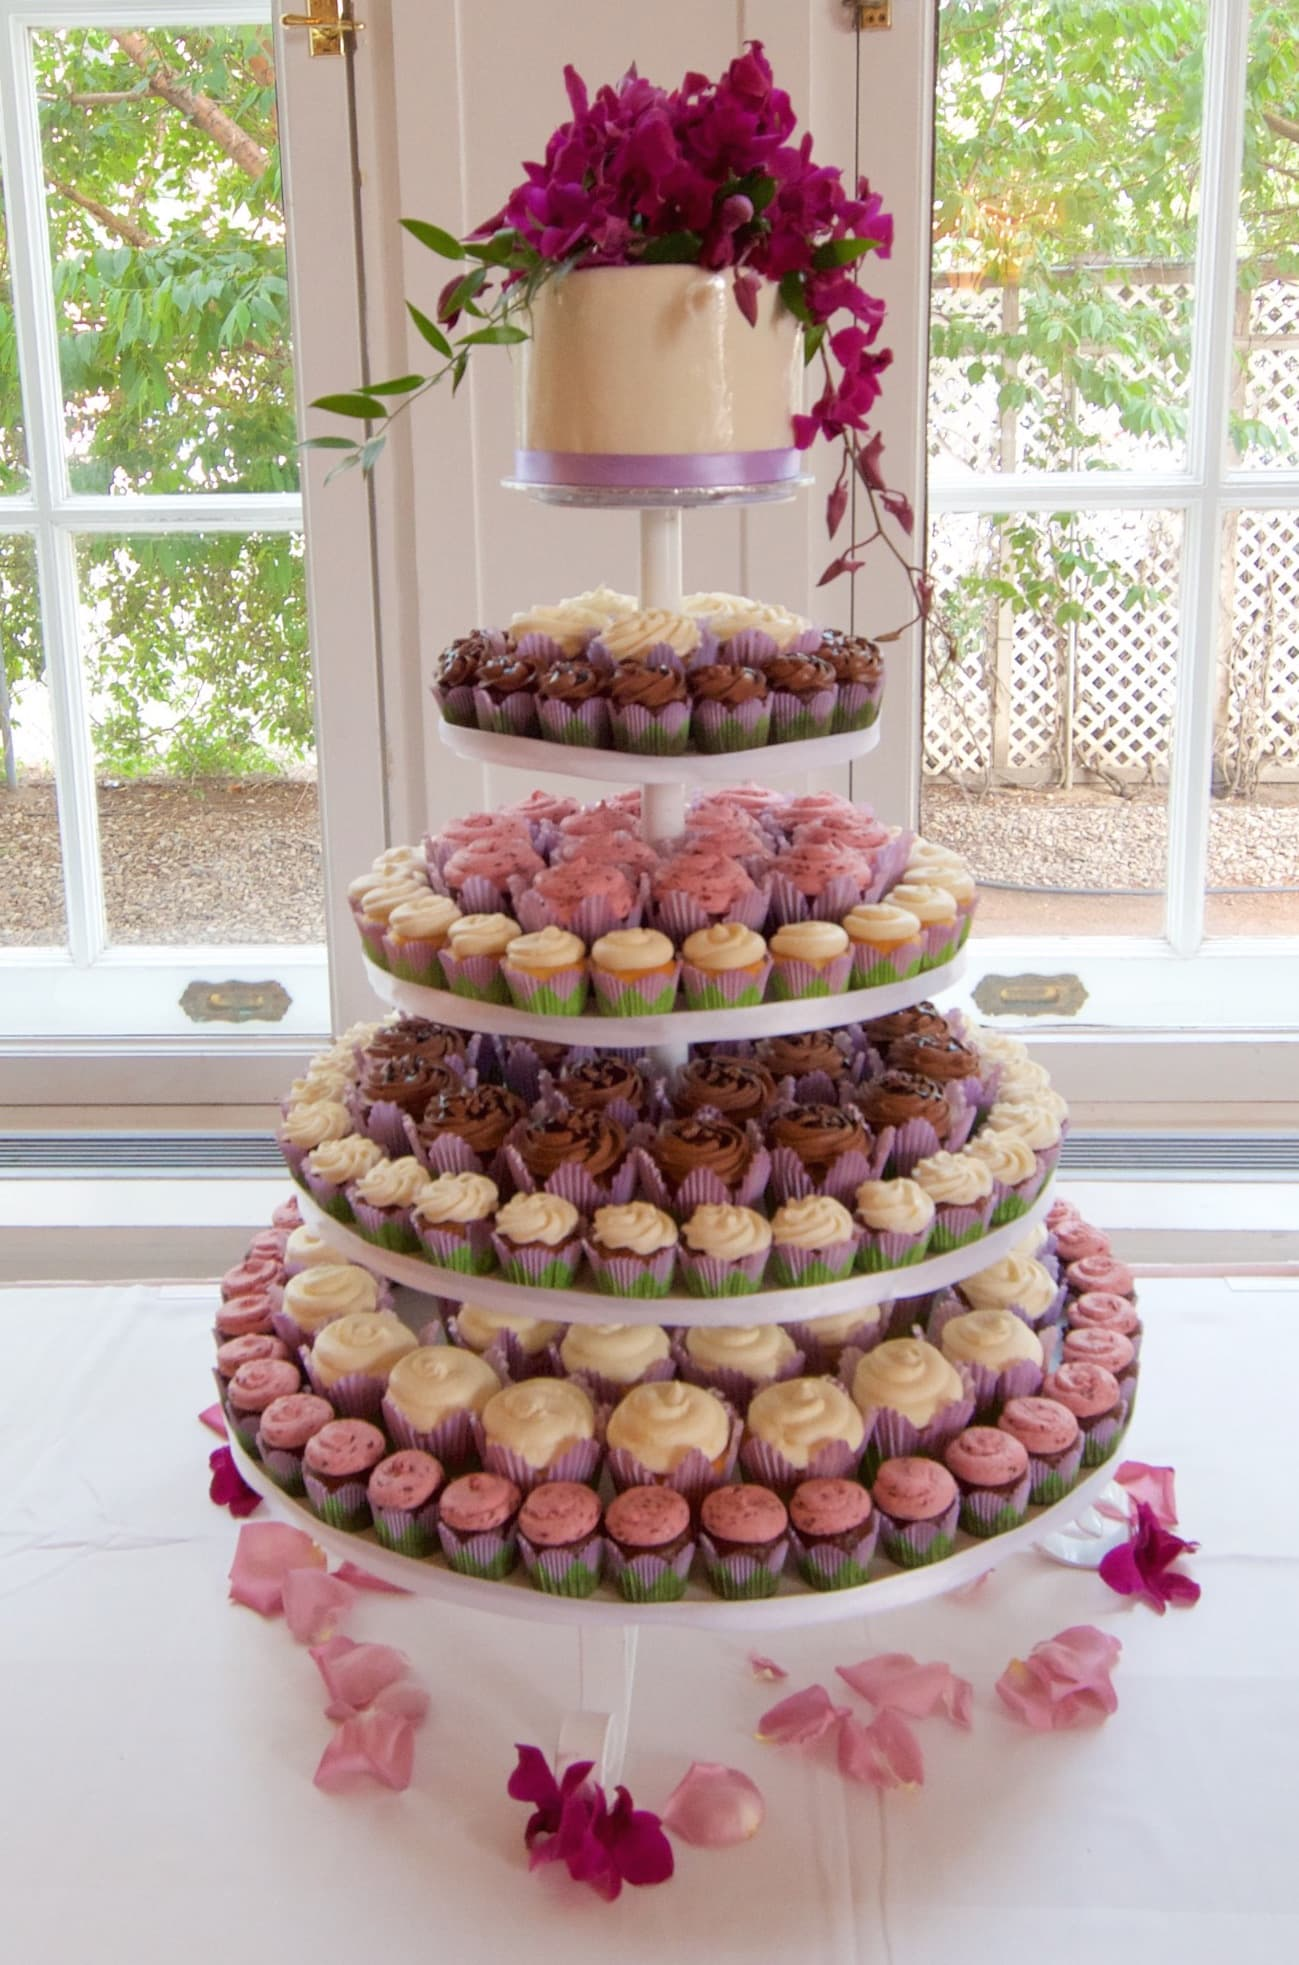 Classic Tower with Real Flowers Whimsical Cake Studio